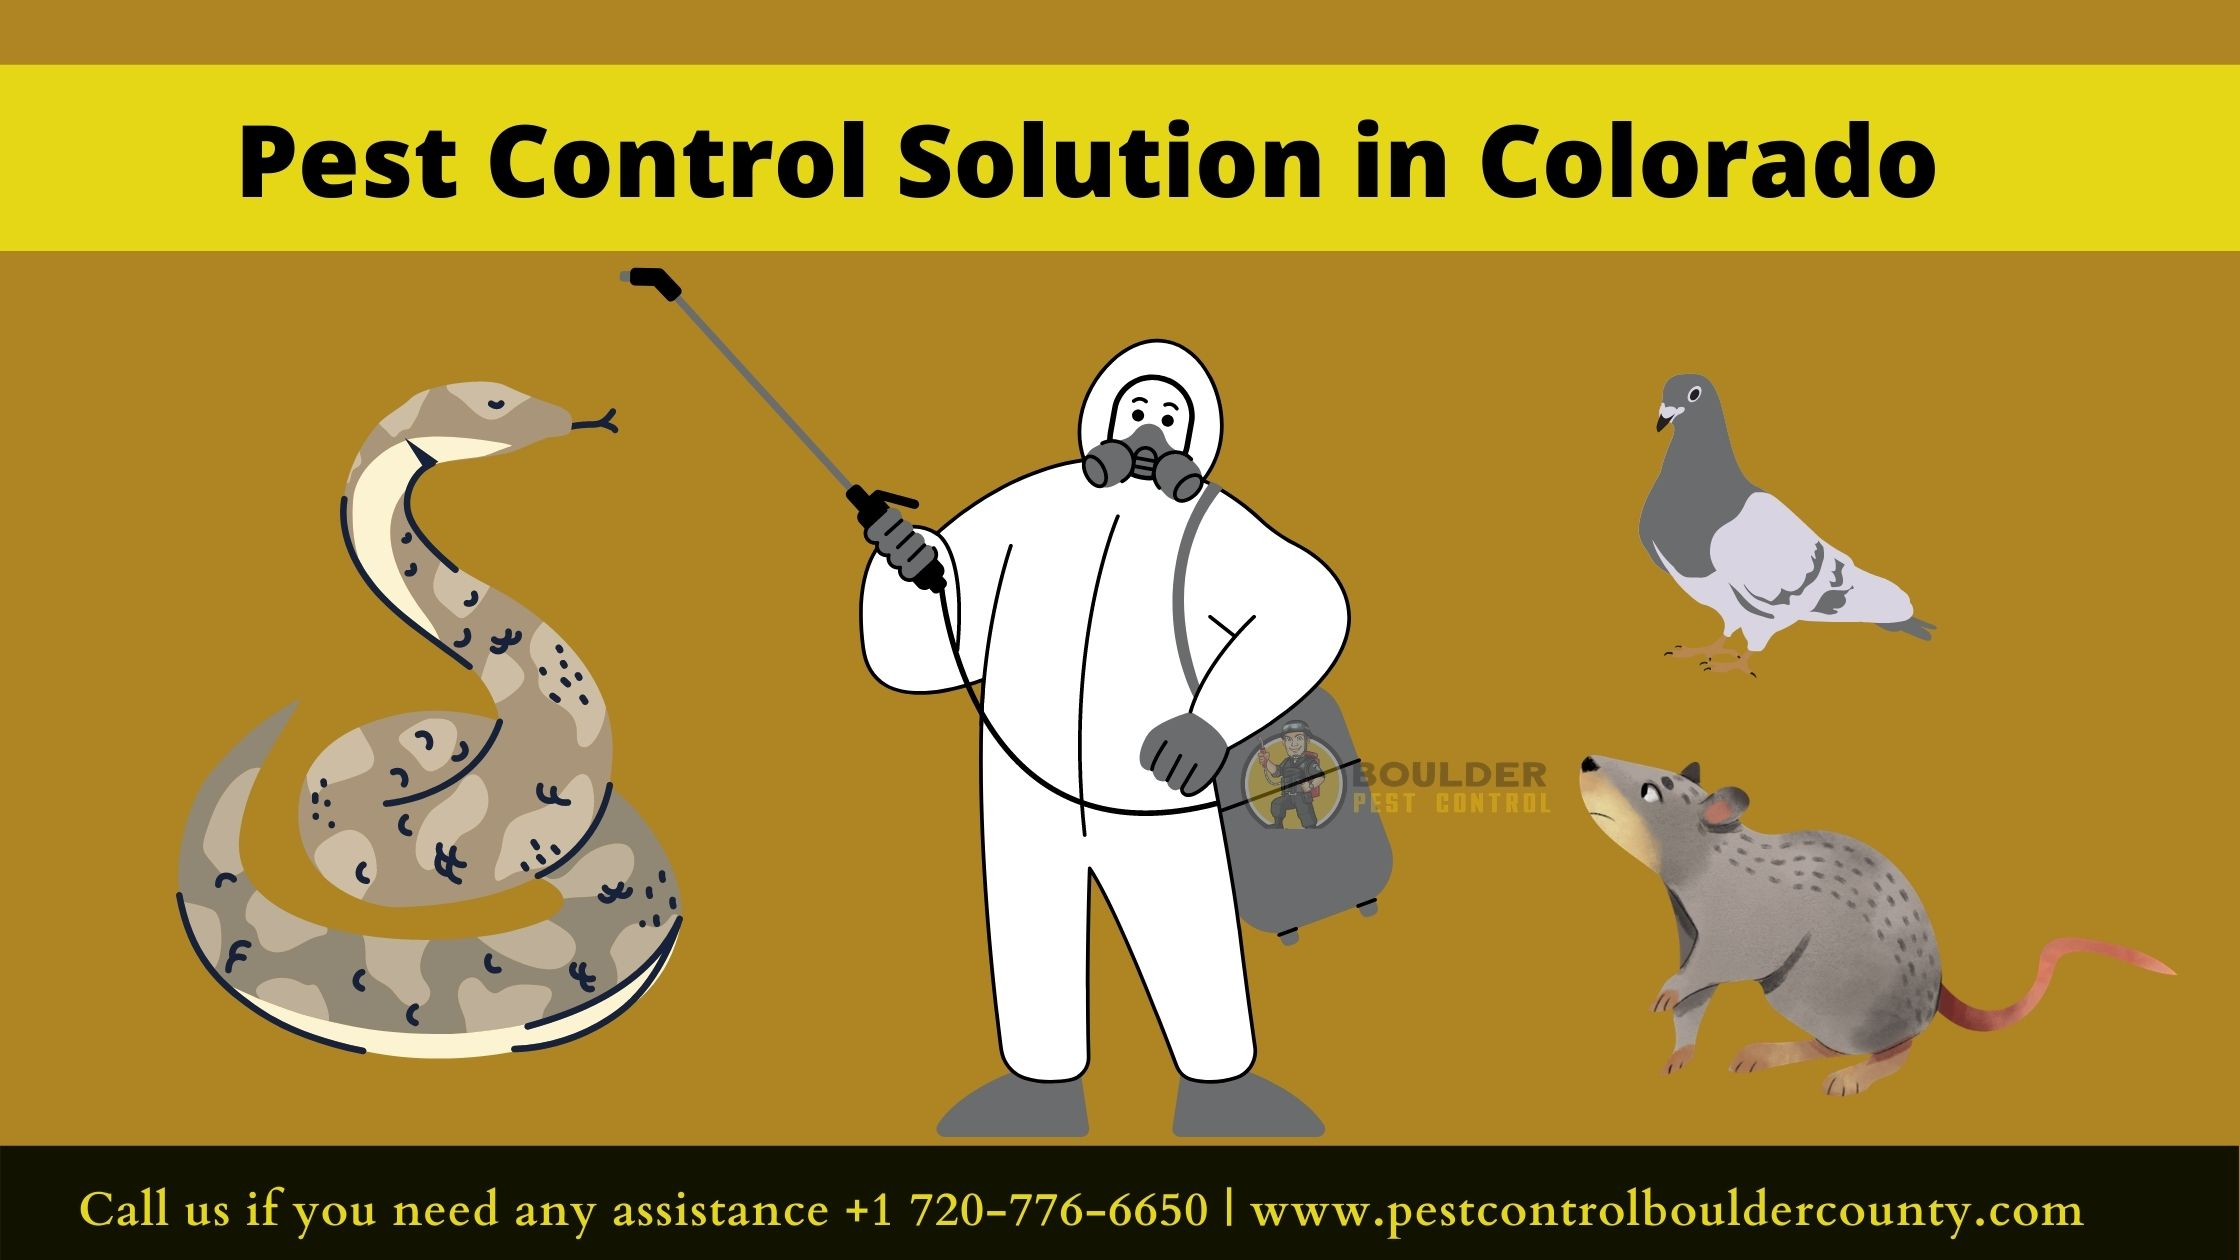 Pest Control Solution for Pigeons, Gopher Snakes, Centipedes, and Voles in Colorado